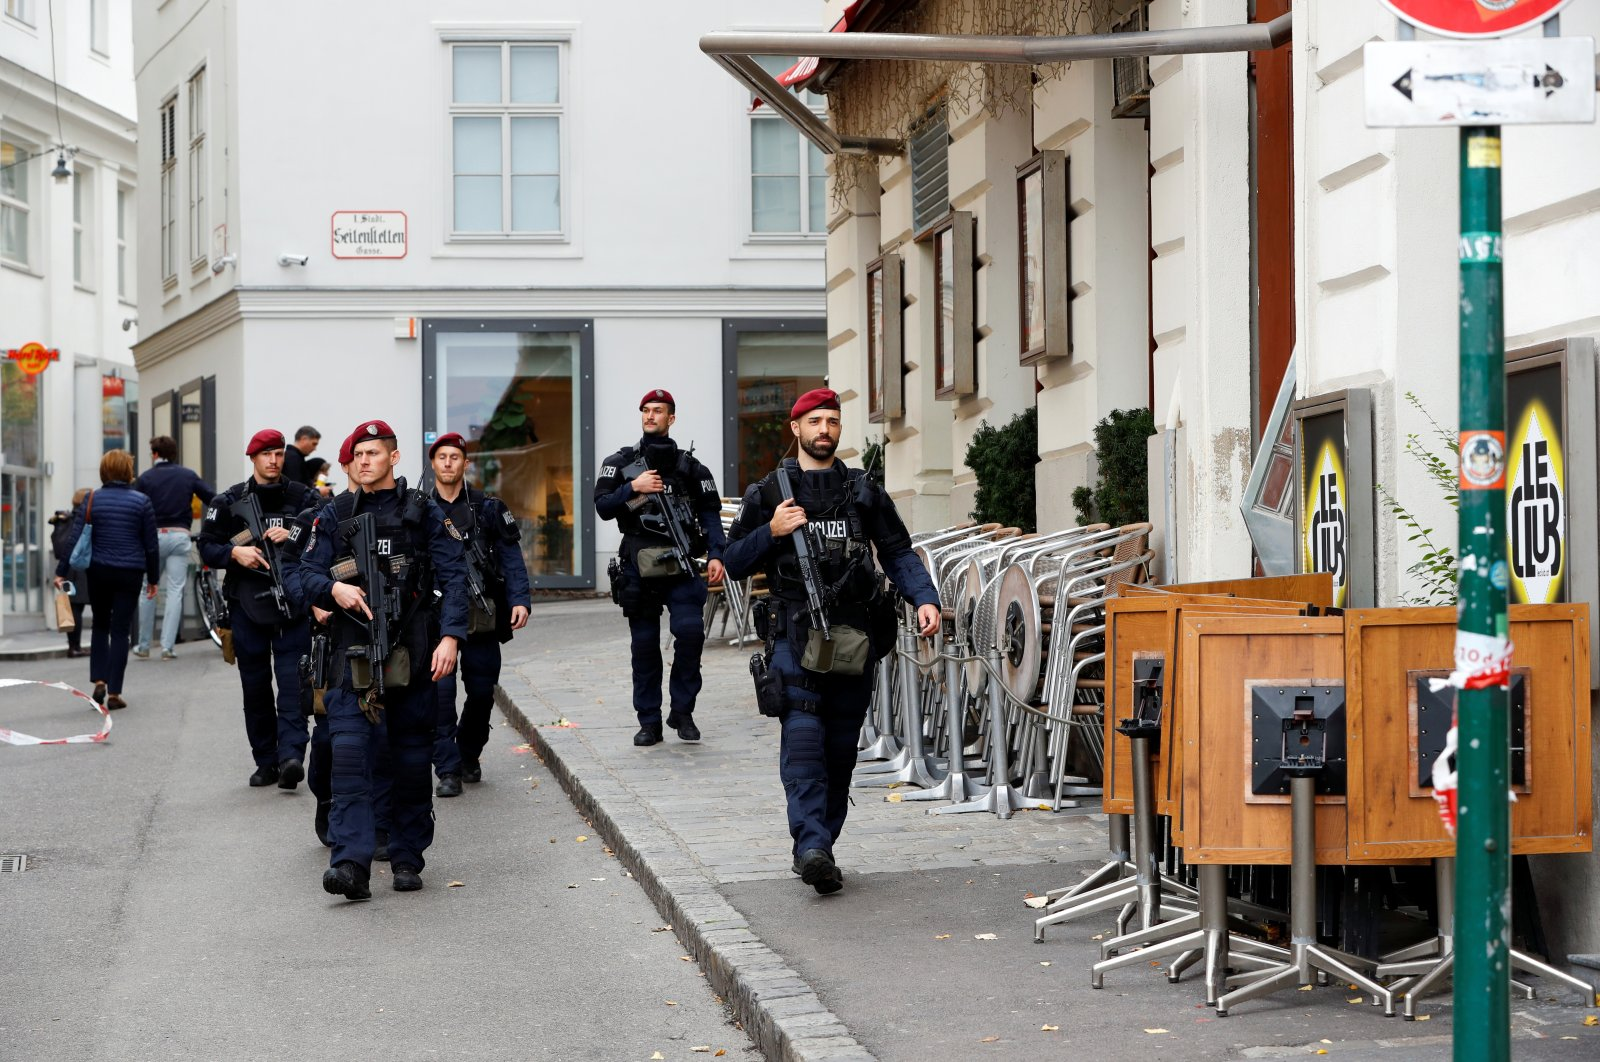 Armed police officers patrol near the site of a Daesh terrorist attack in Vienna, Austria, Nov. 4, 2020. REUTERS